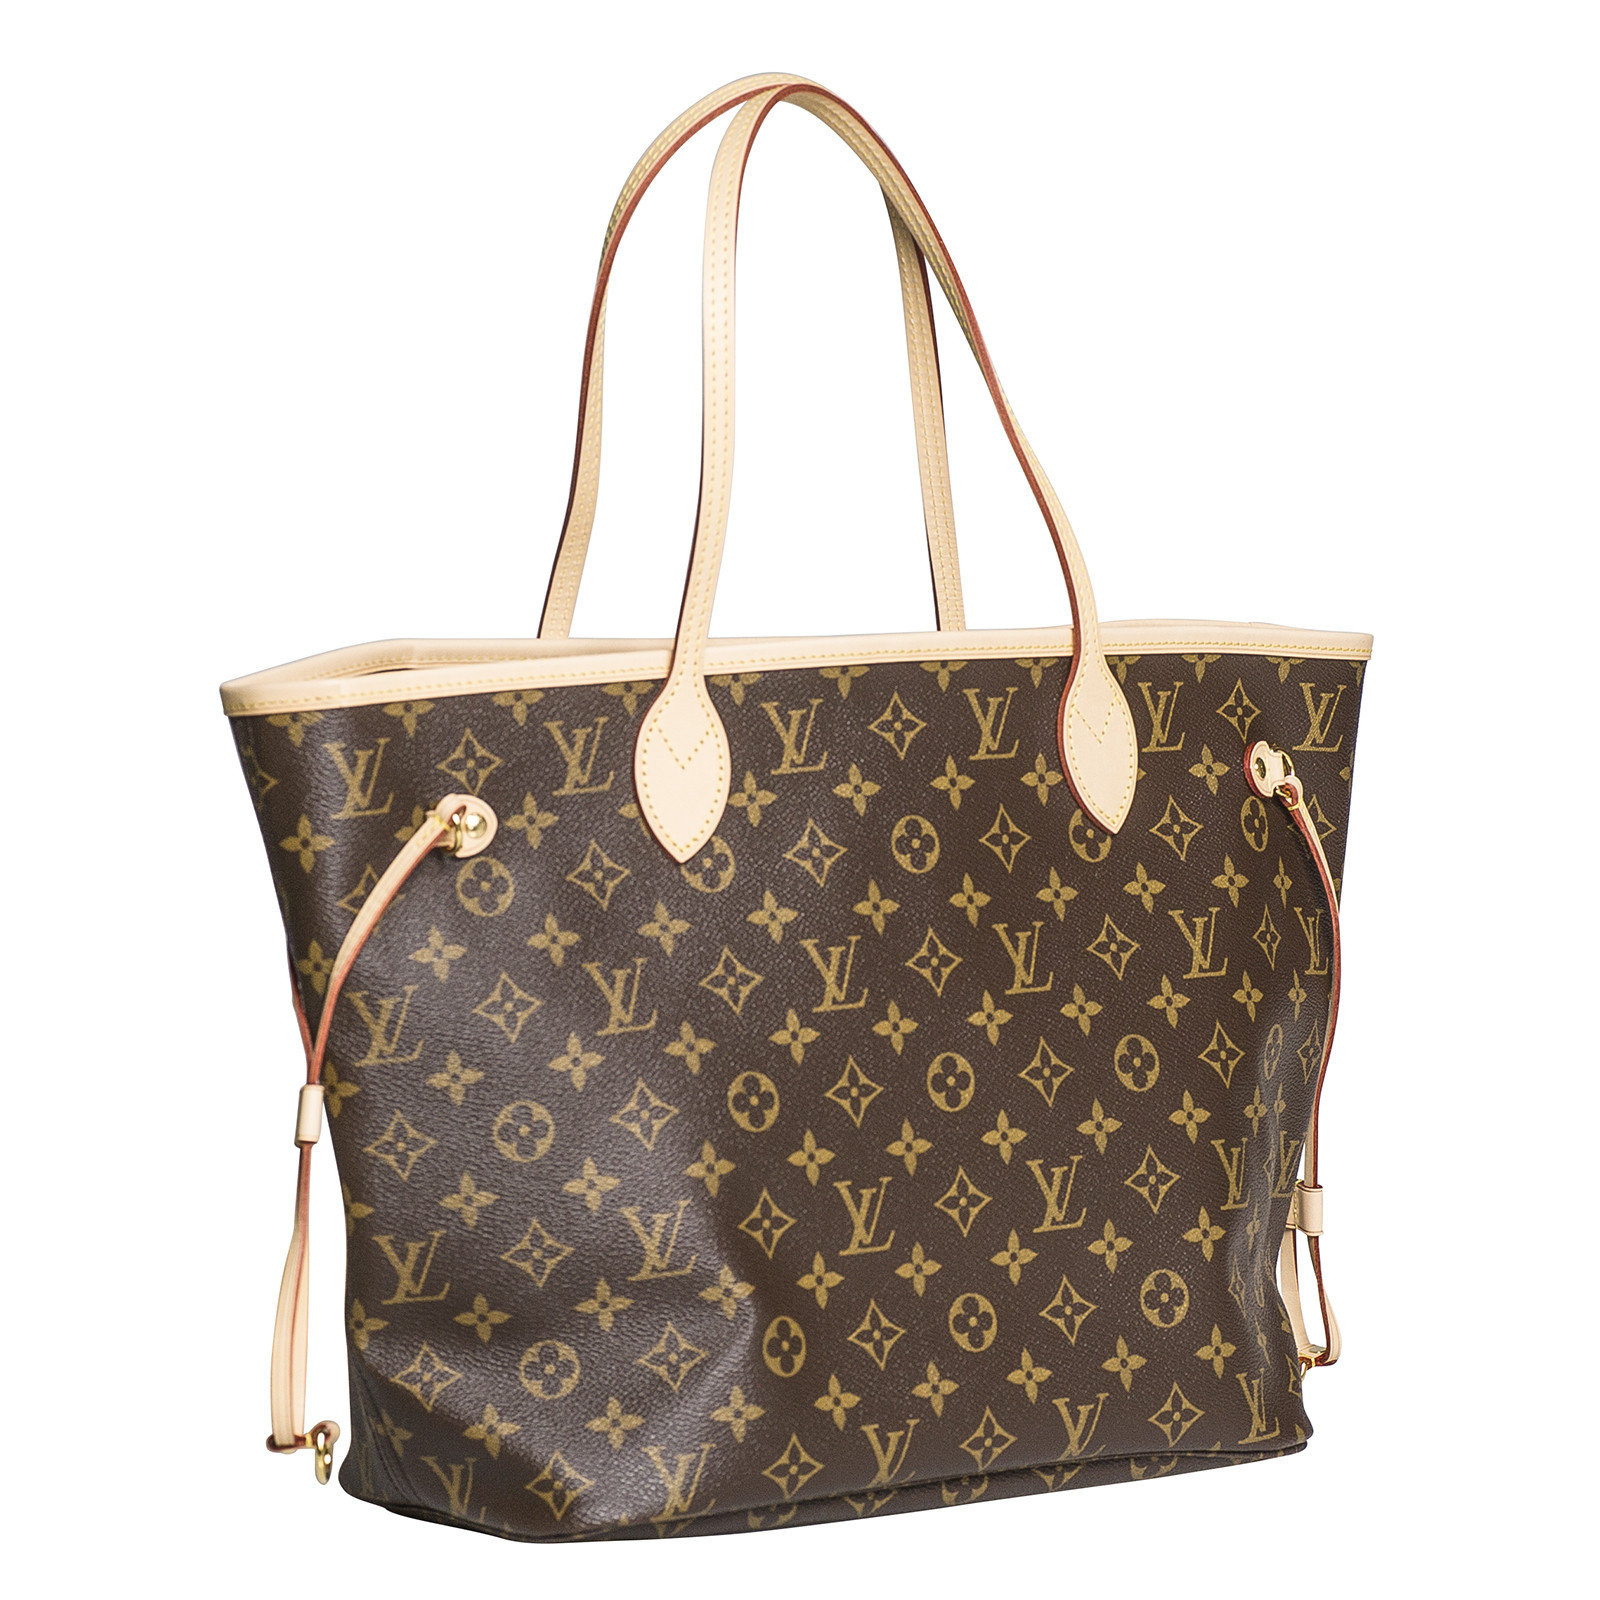 Vintage Louis Vuitton Monogram Neverfull MM Tote Handbag